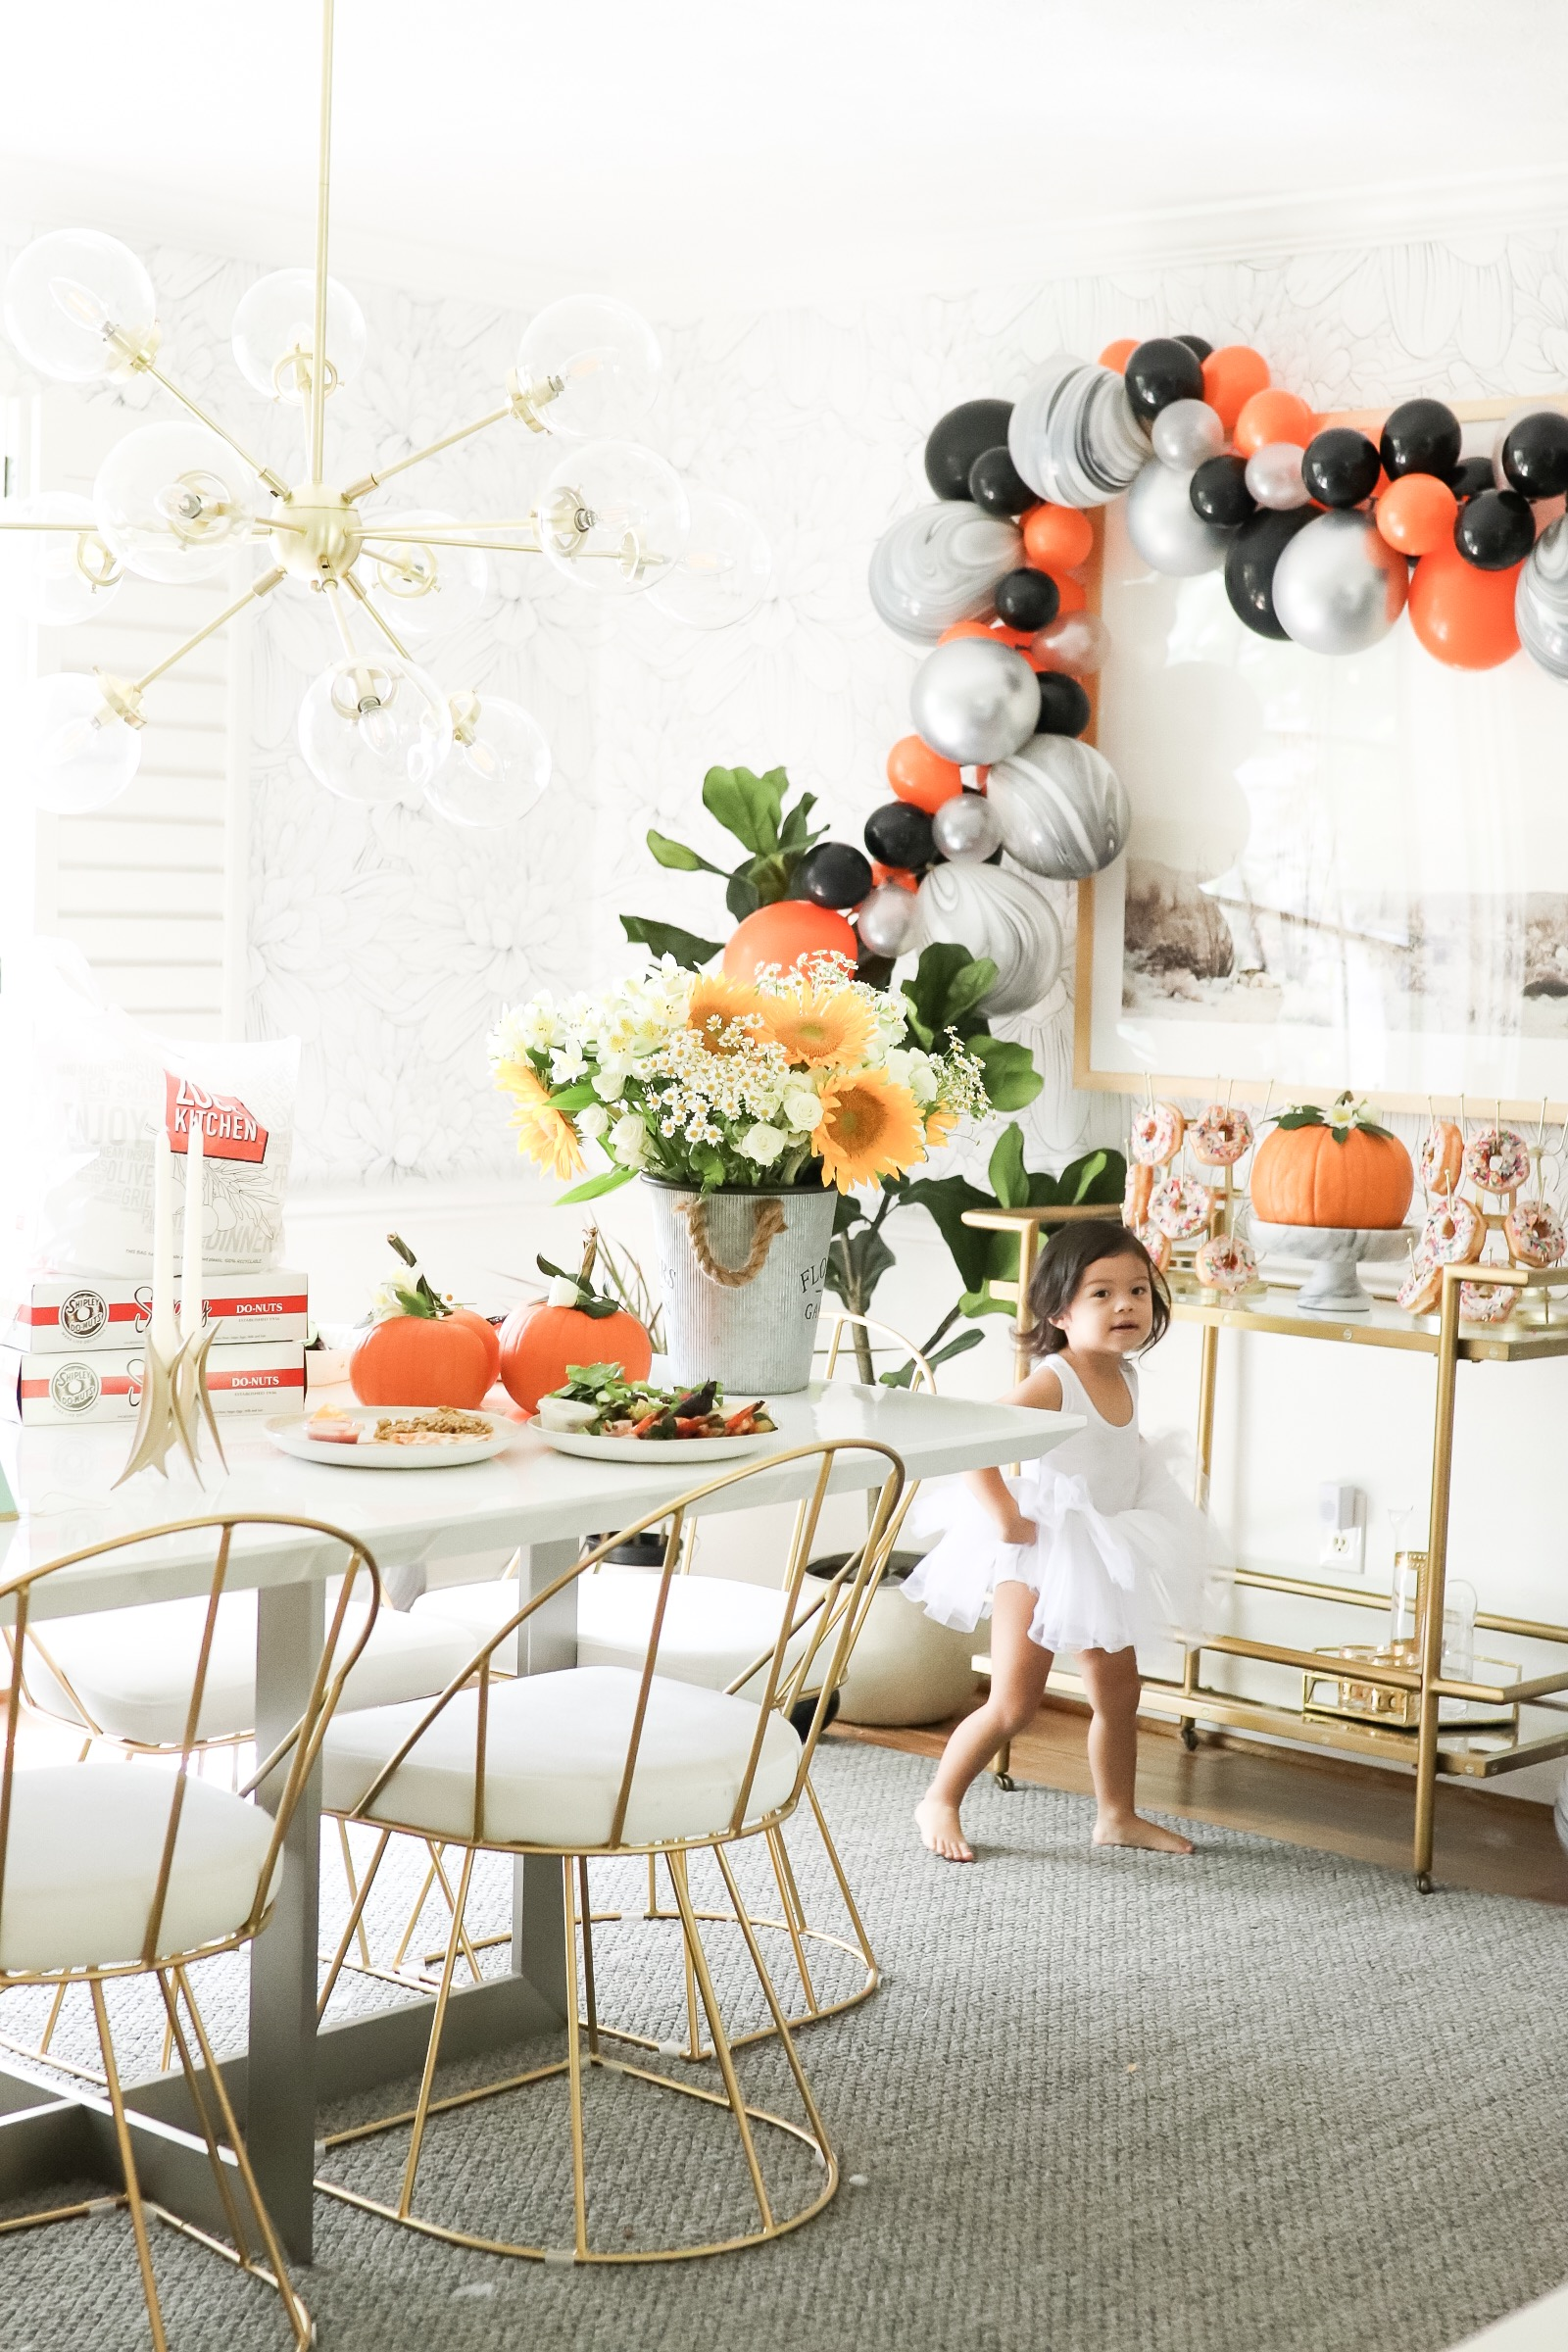 Fall Harvest Donut Party Dining Room Set Up in 30 Minutes Ballon Garland DIY Halloween Thanksgiving Table Set up